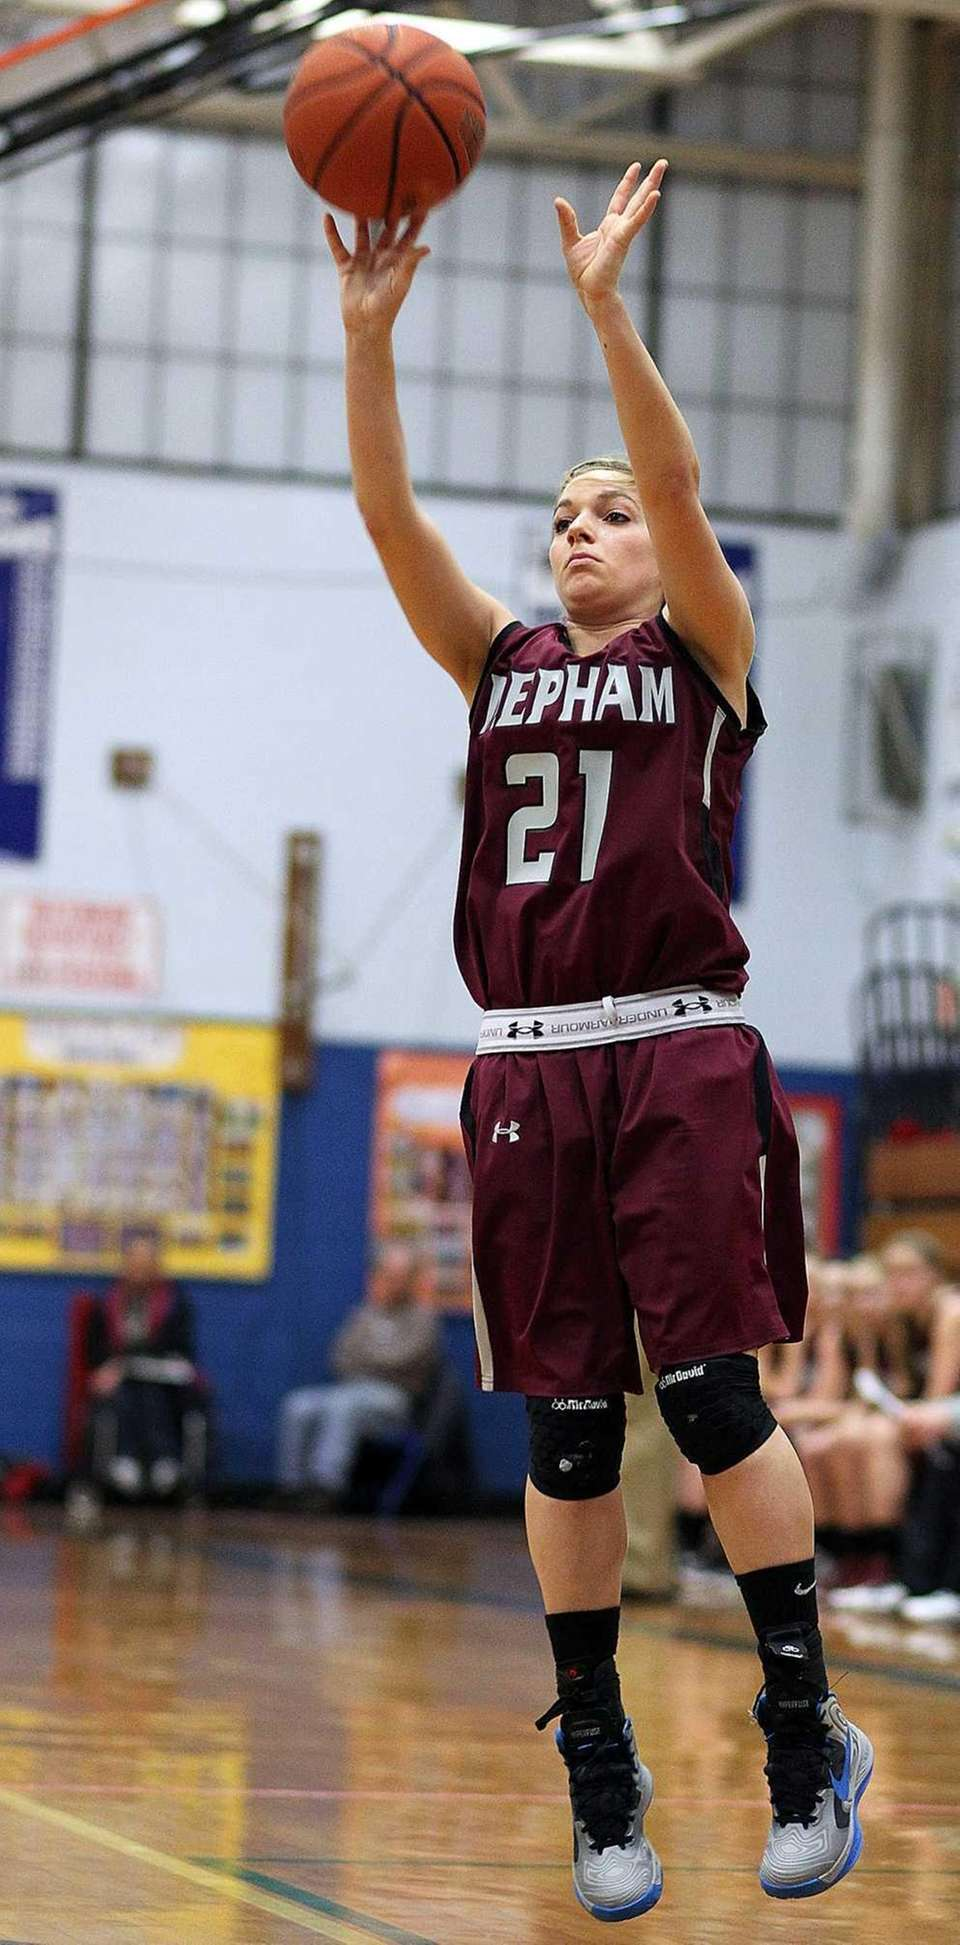 Mepham's Mary Galgano takes a shot from outside